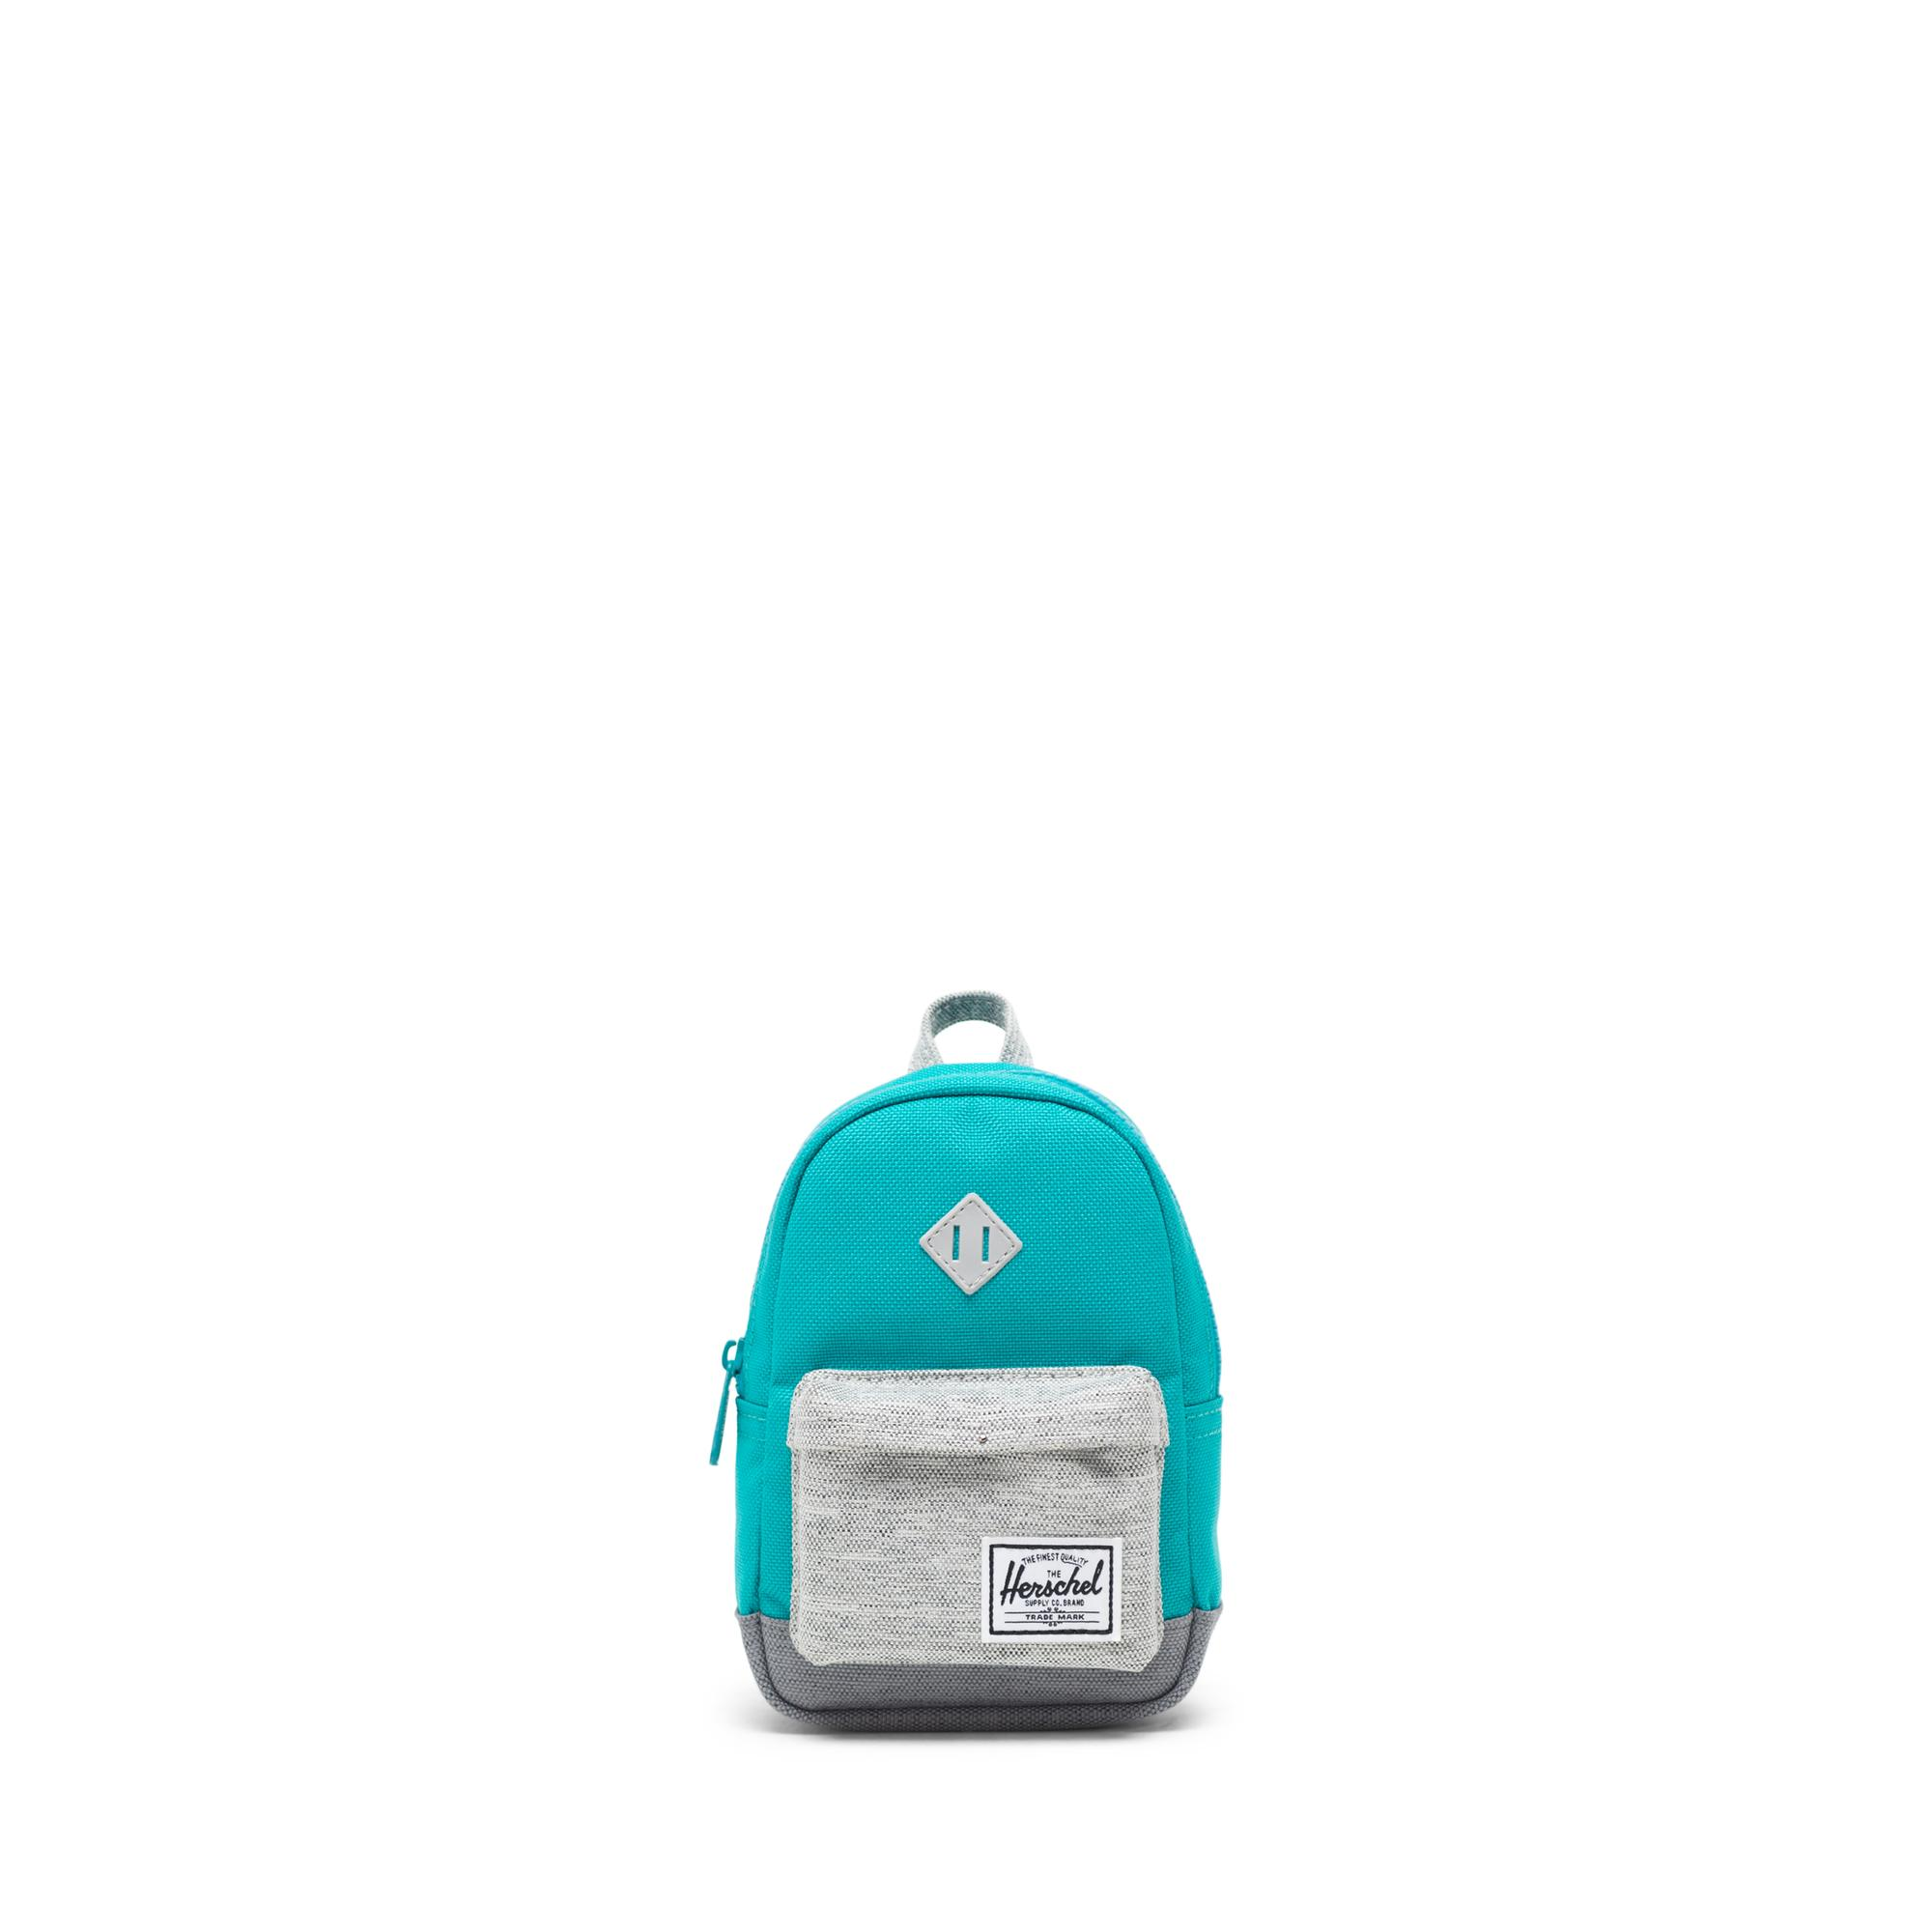 738ff59cc9e Heritage Backpack Mini   Herschel Supply Company